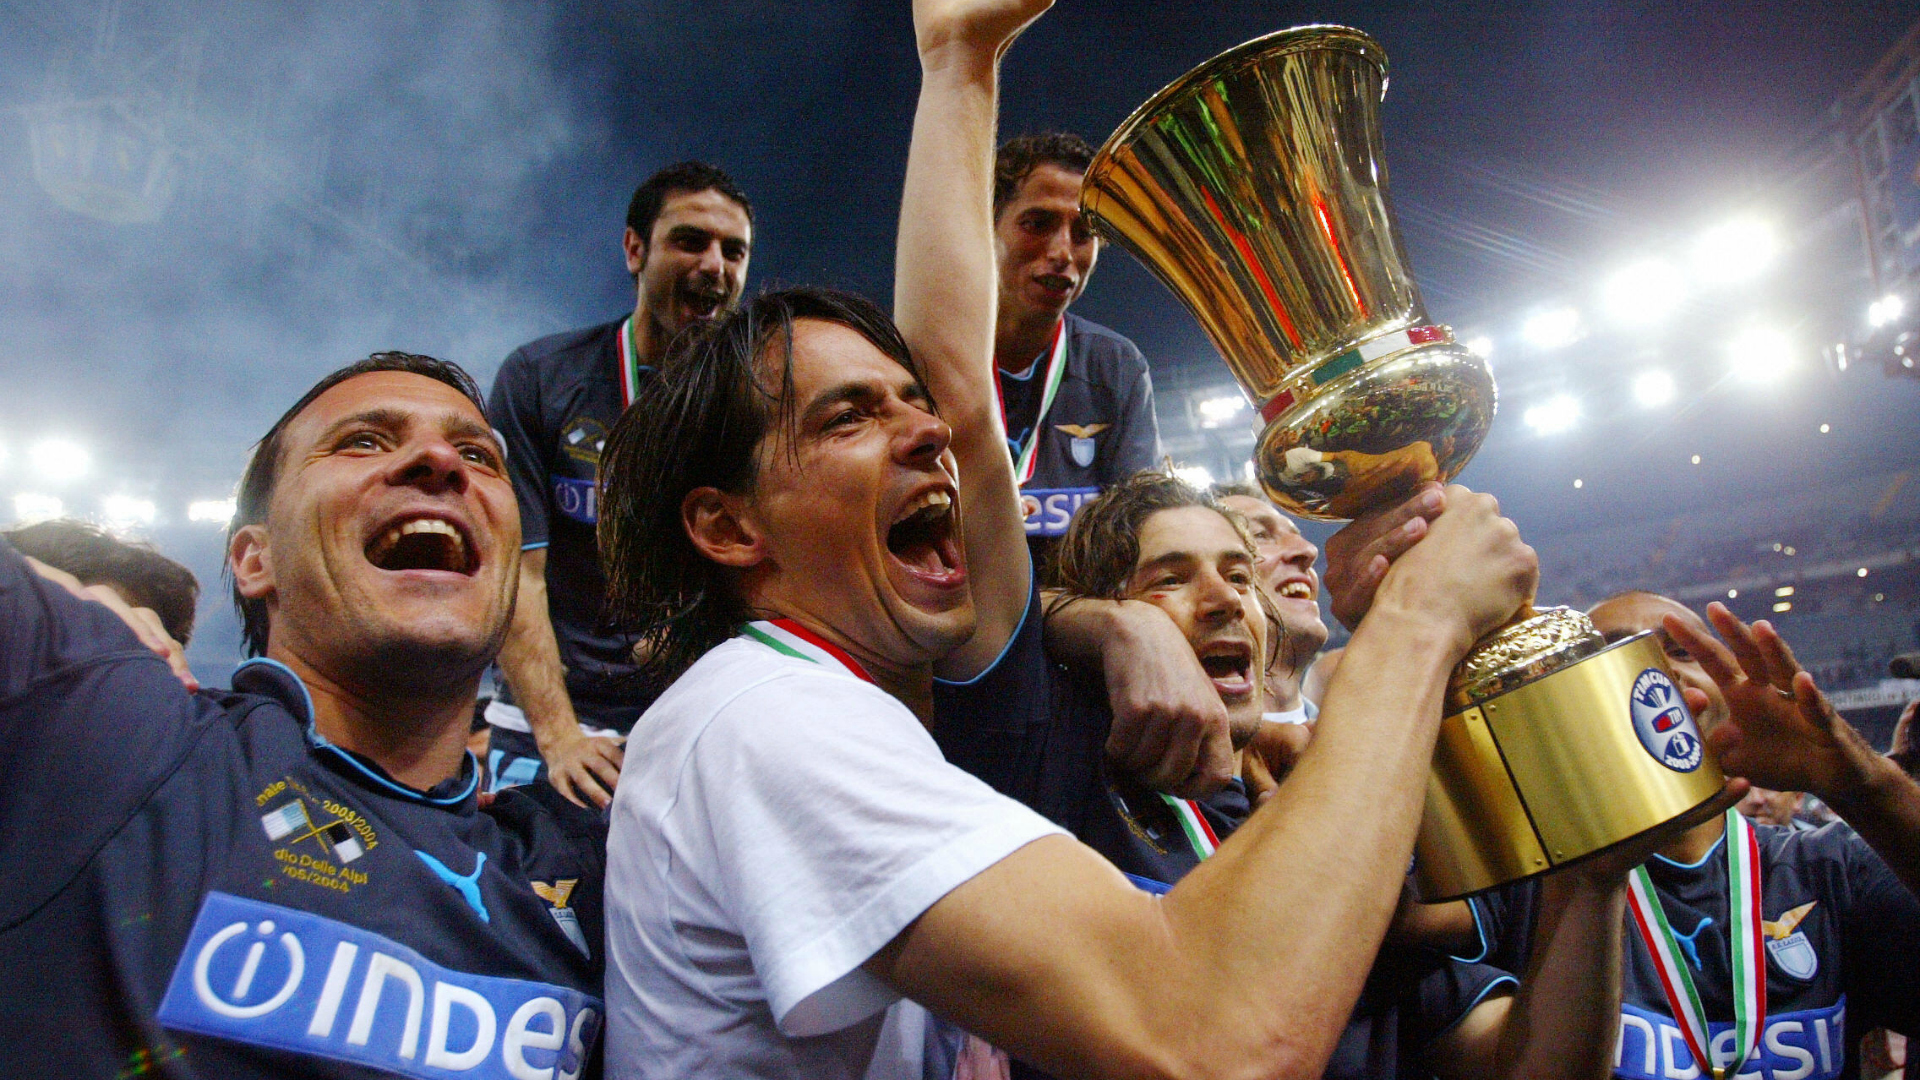 Coppa Italia, Inzaghi in conferenza: